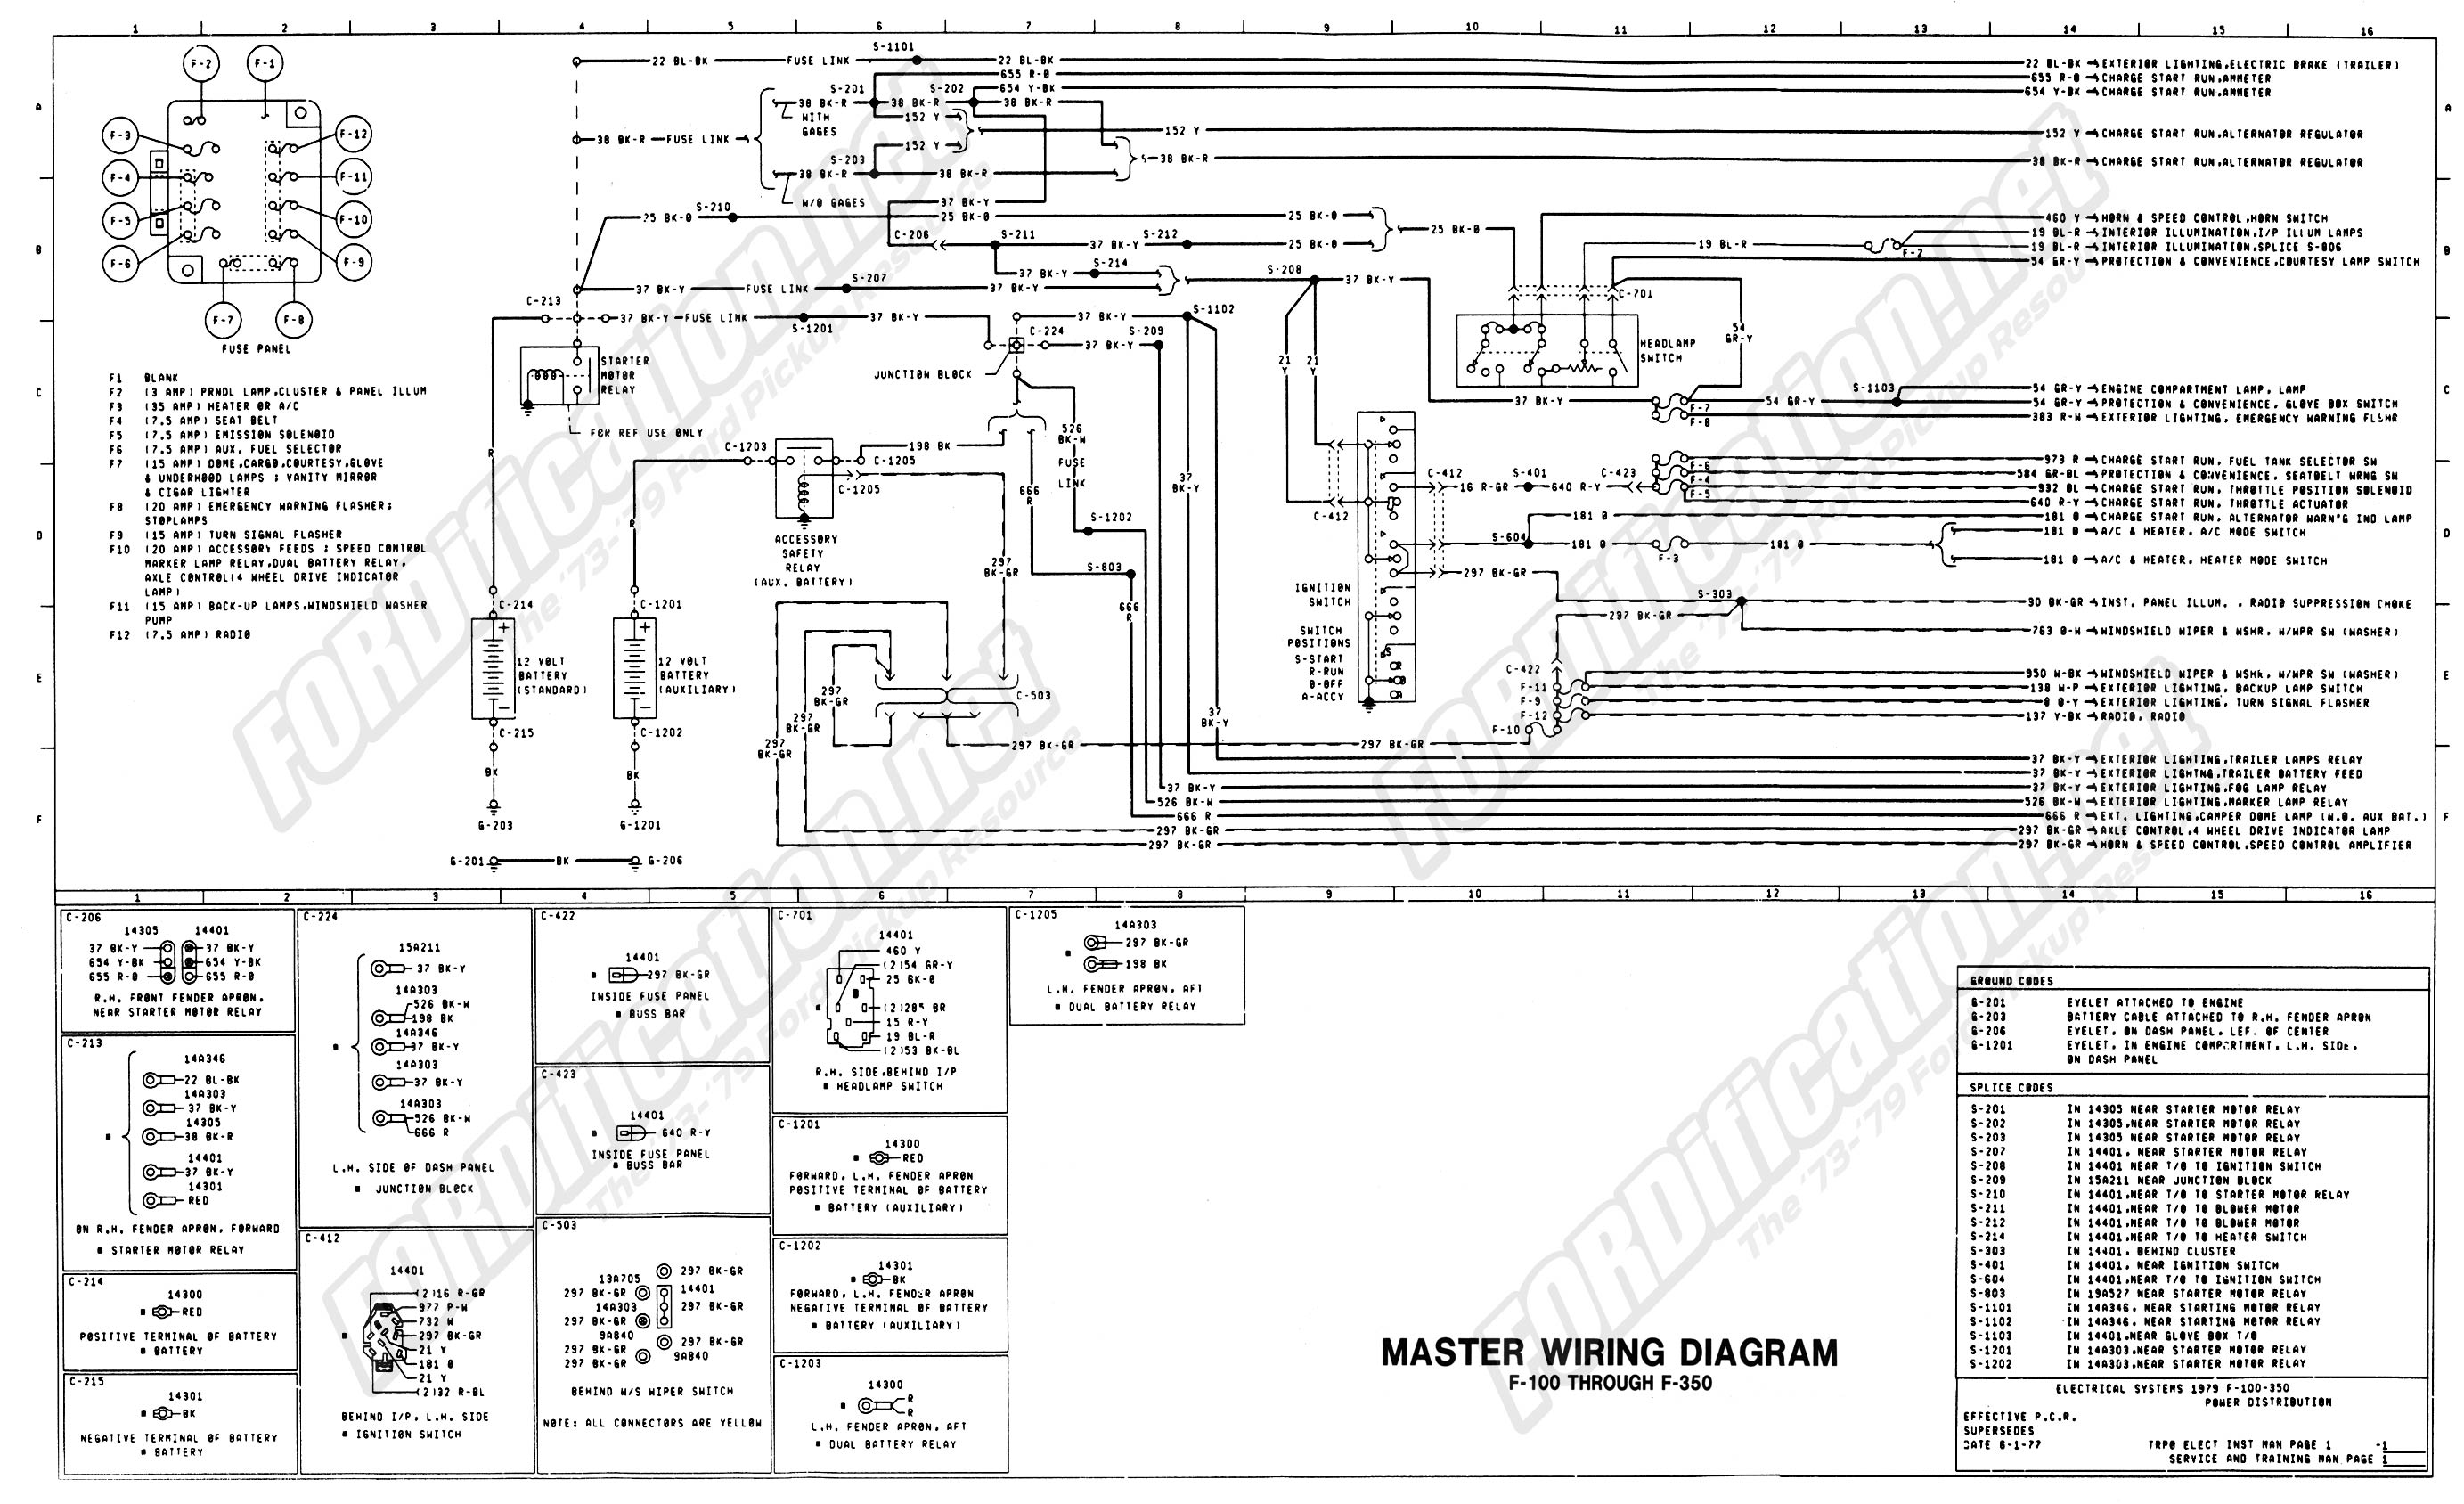 wiring_79master_1of9 1973 1979 ford truck wiring diagrams & schematics fordification net  at bayanpartner.co